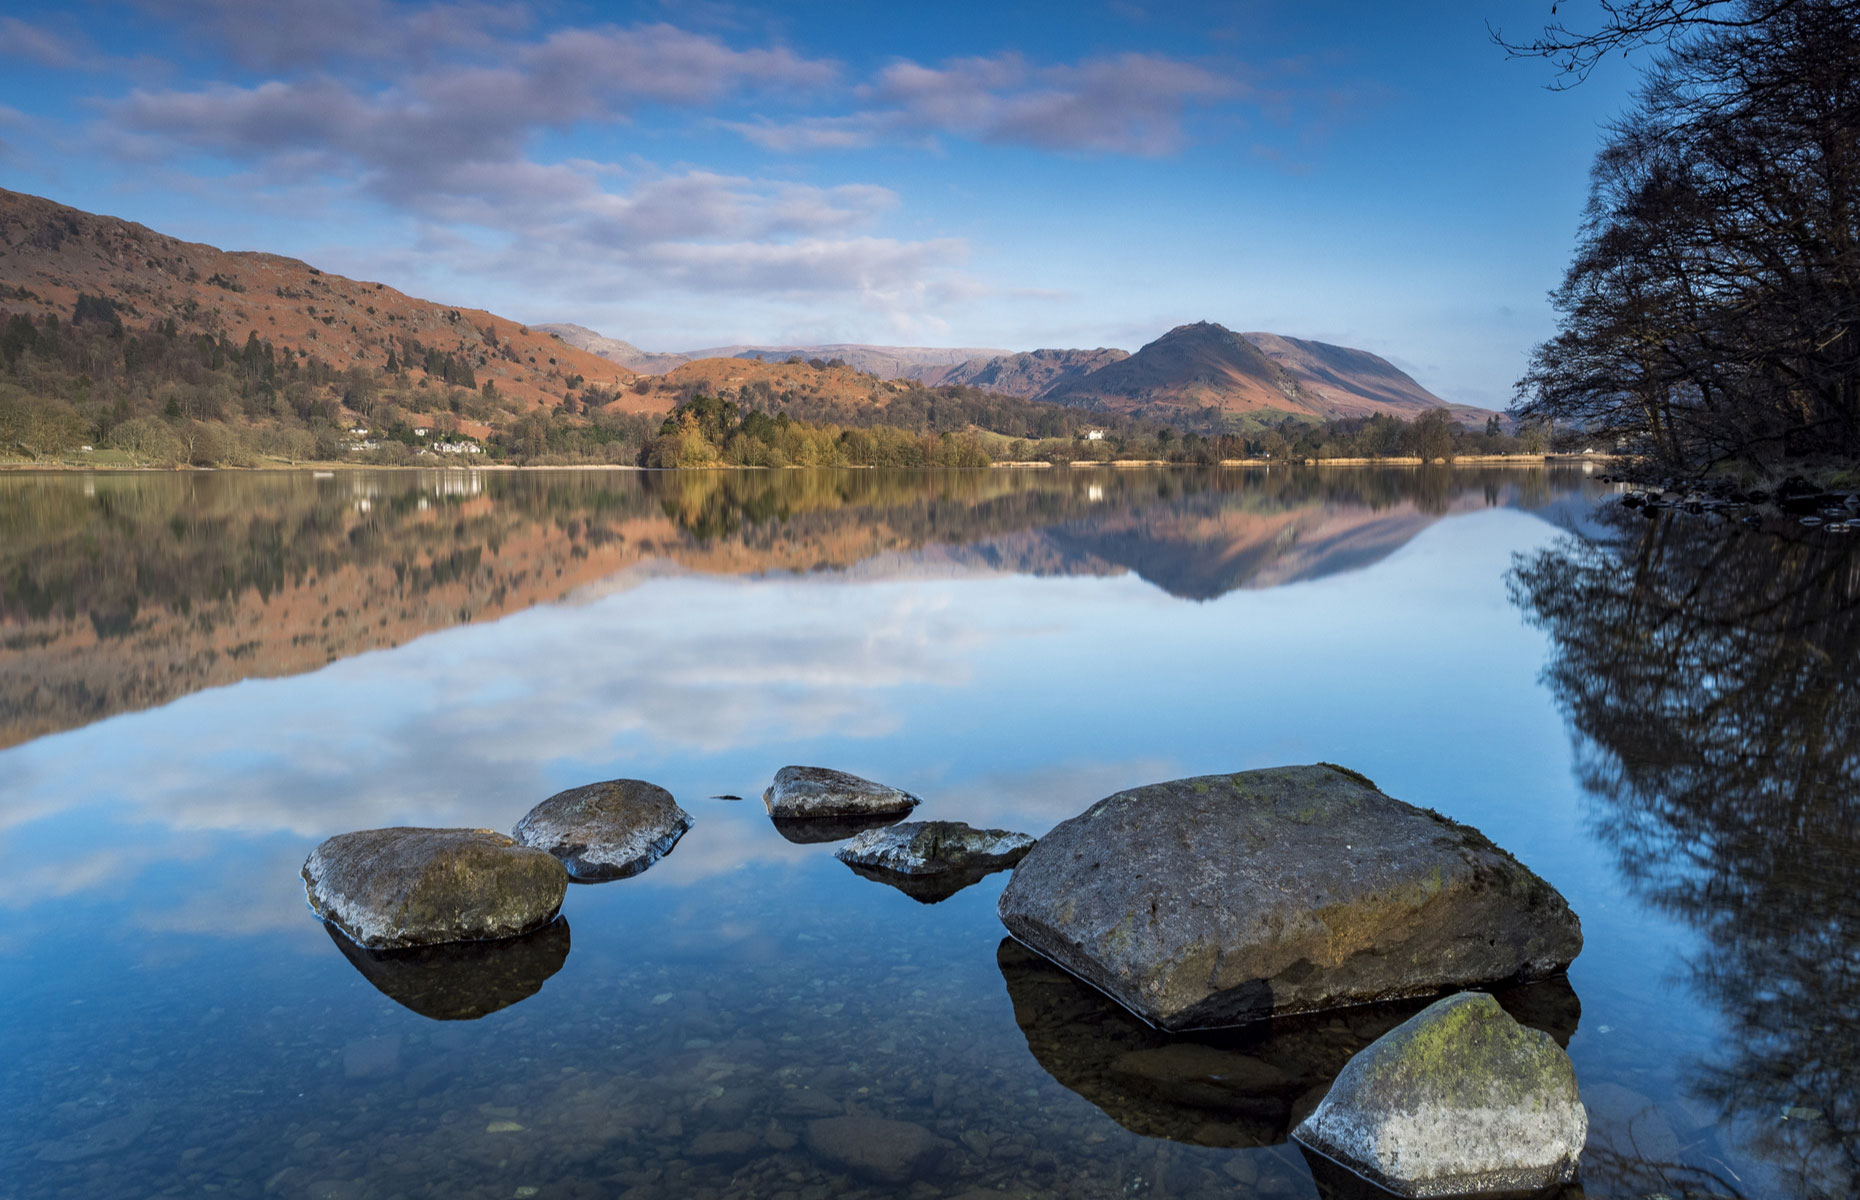 Grasmere lake with reflection (Image: Richard Bowden/Shutterstock)